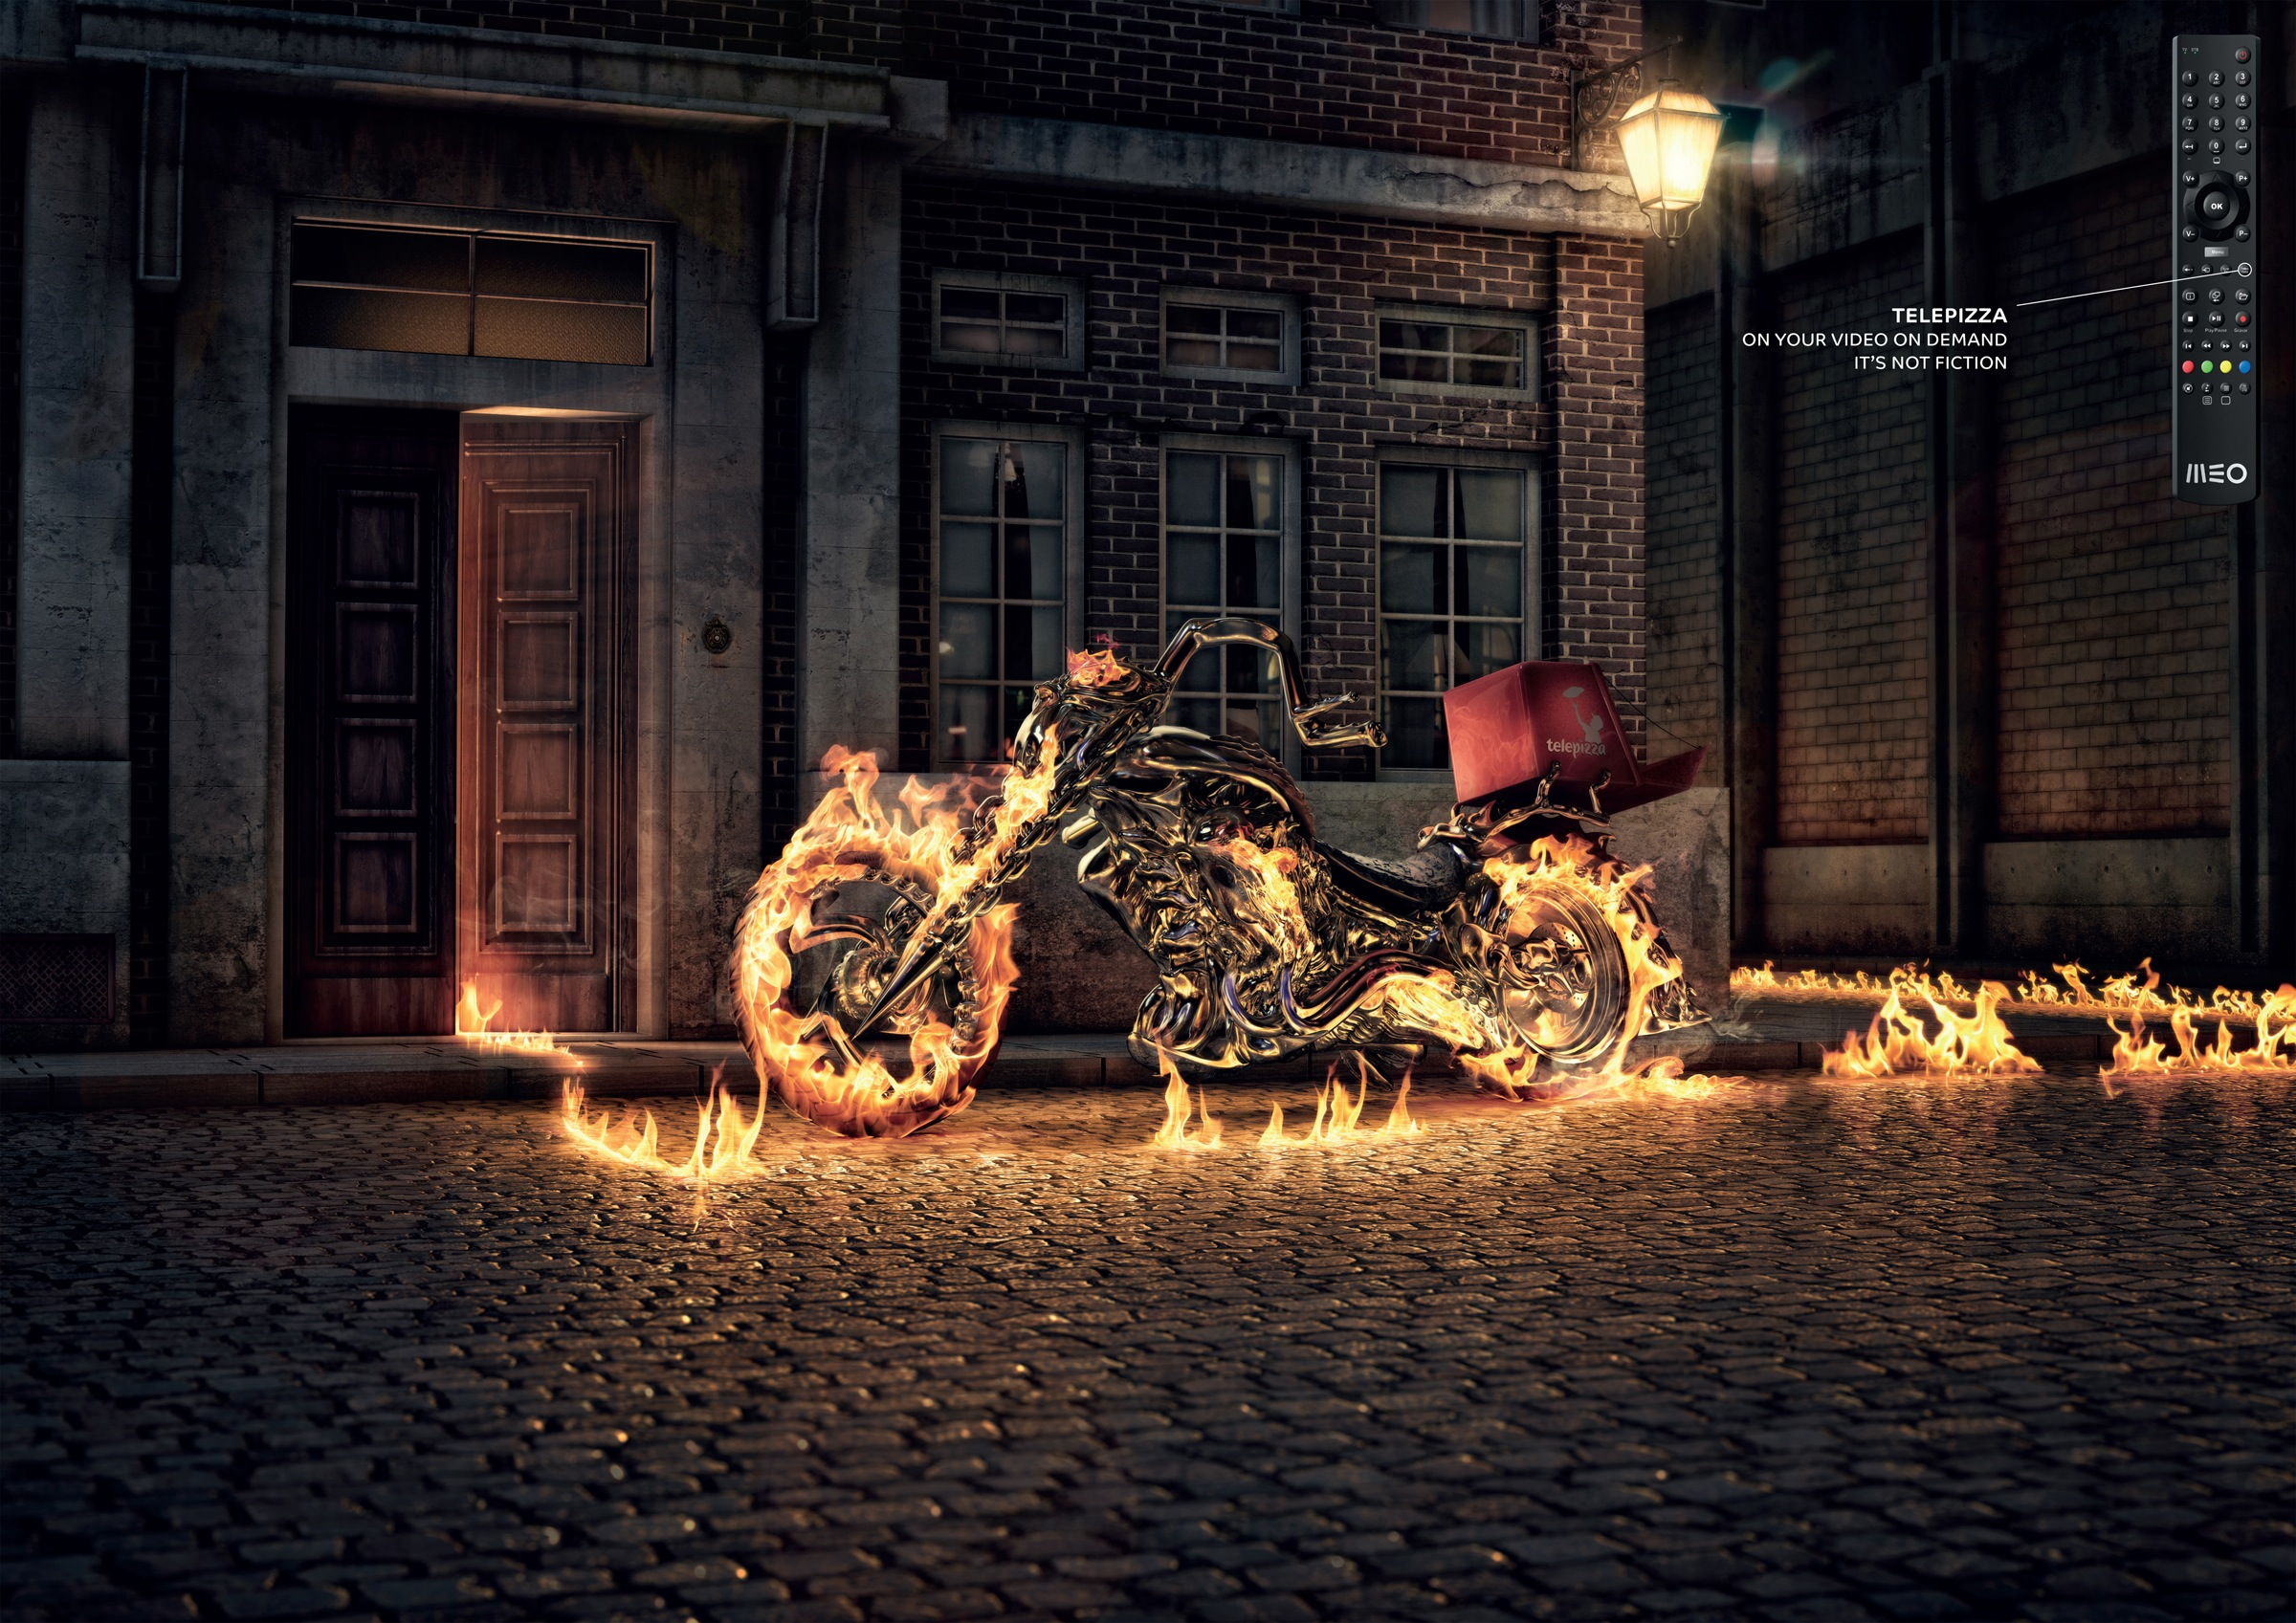 meo print advertmstf: ghostrider | ads of the world™